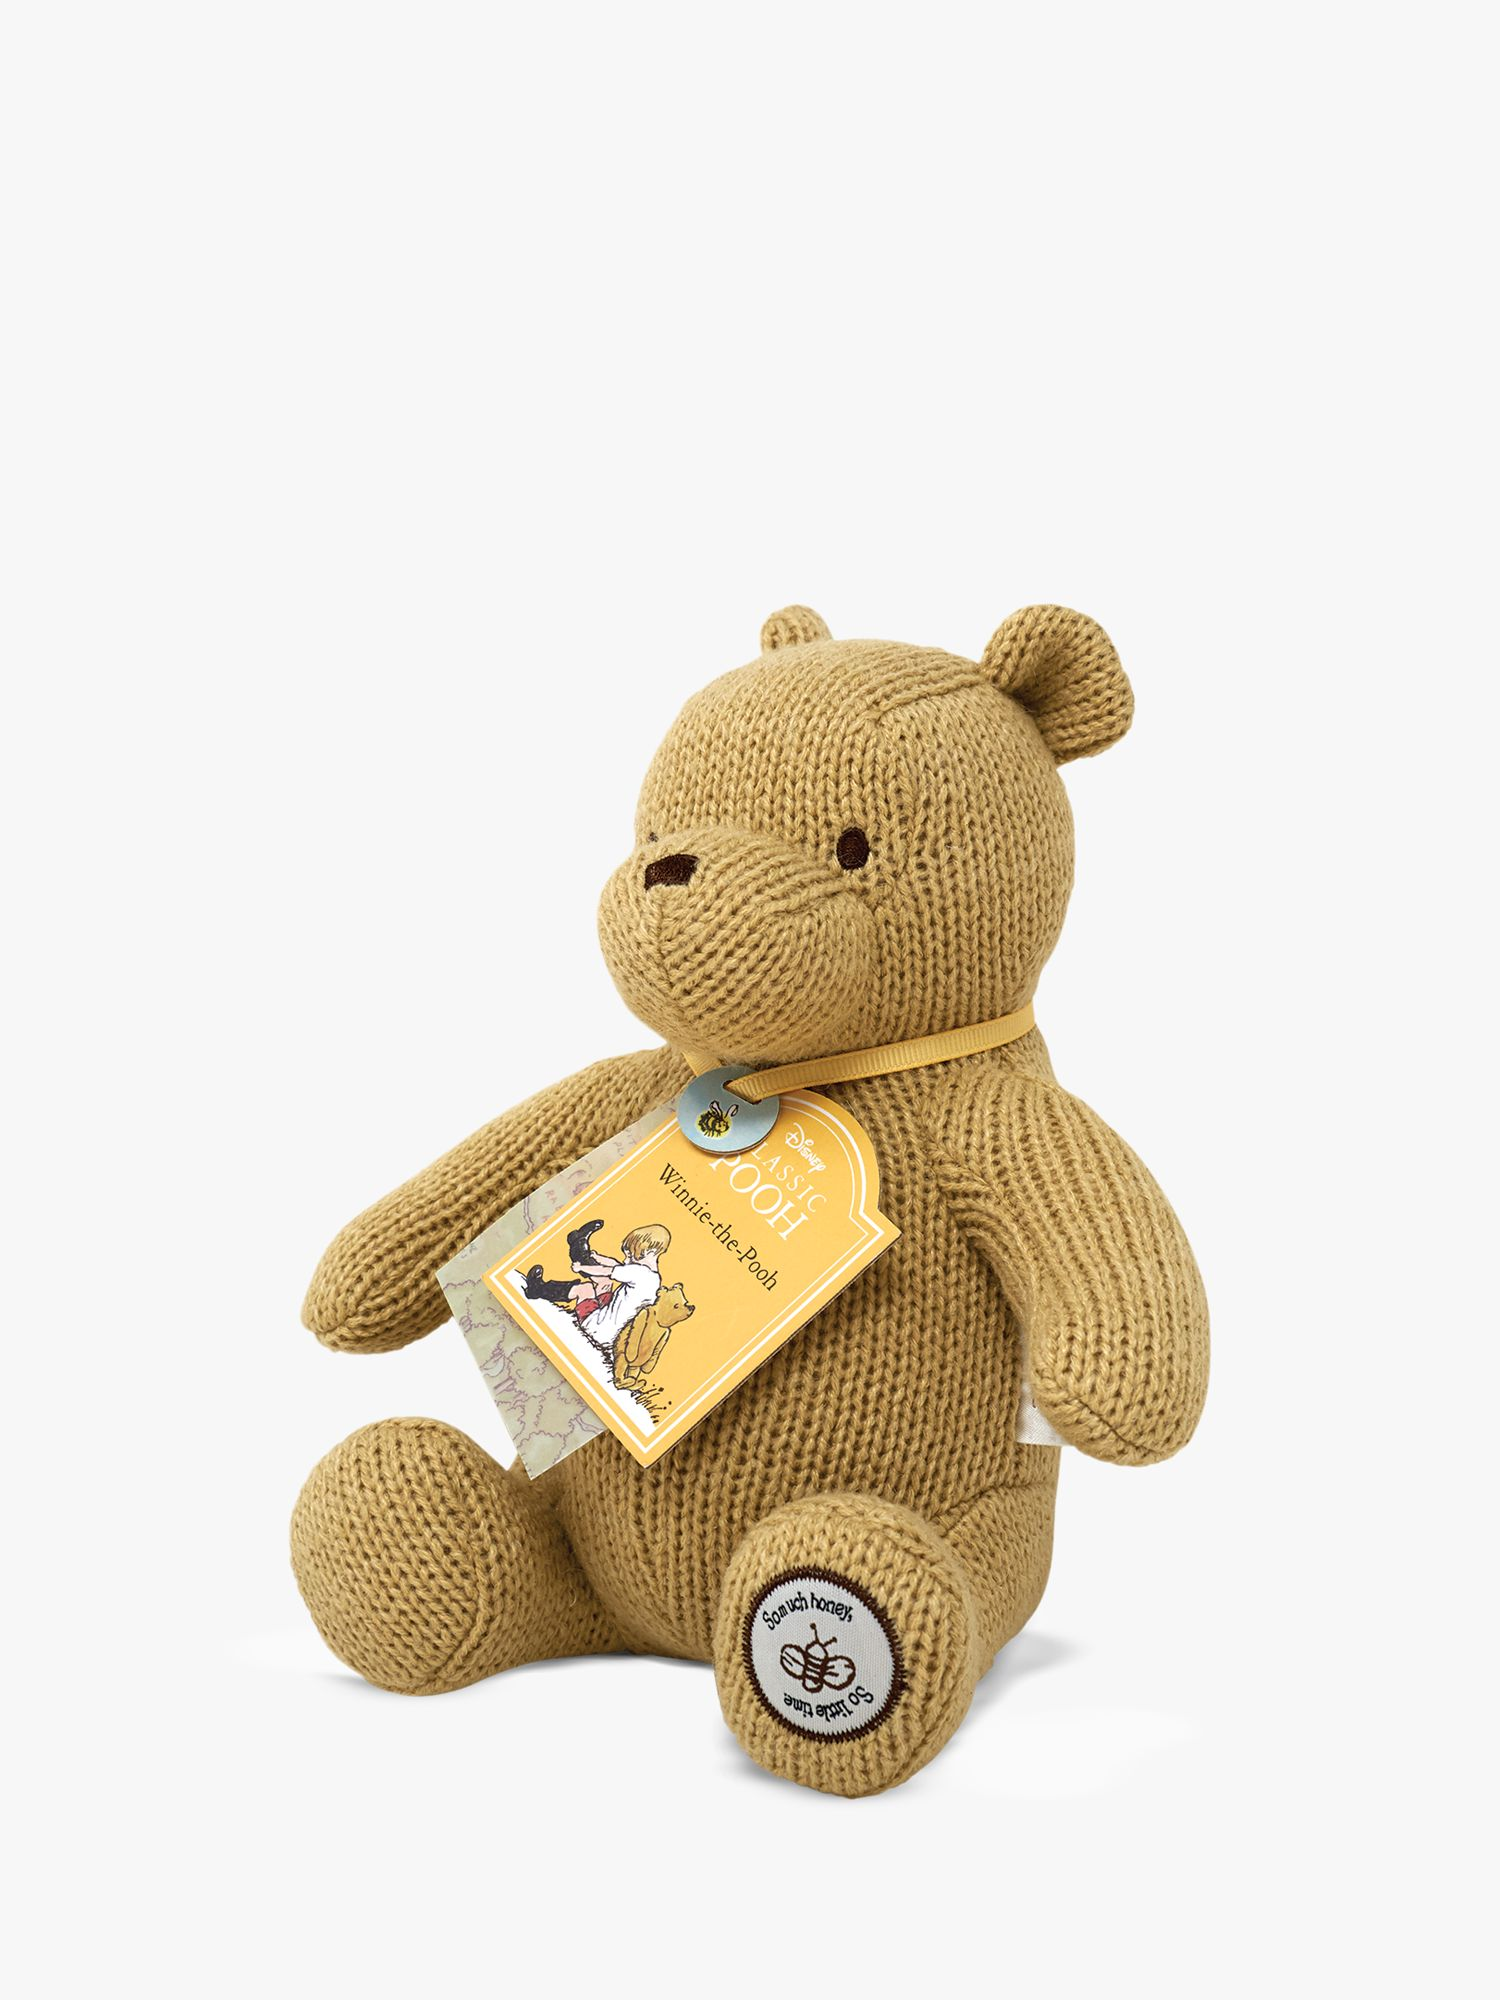 Winnie the pooh Winnie the Pooh Made With Love Baby Soft Toy